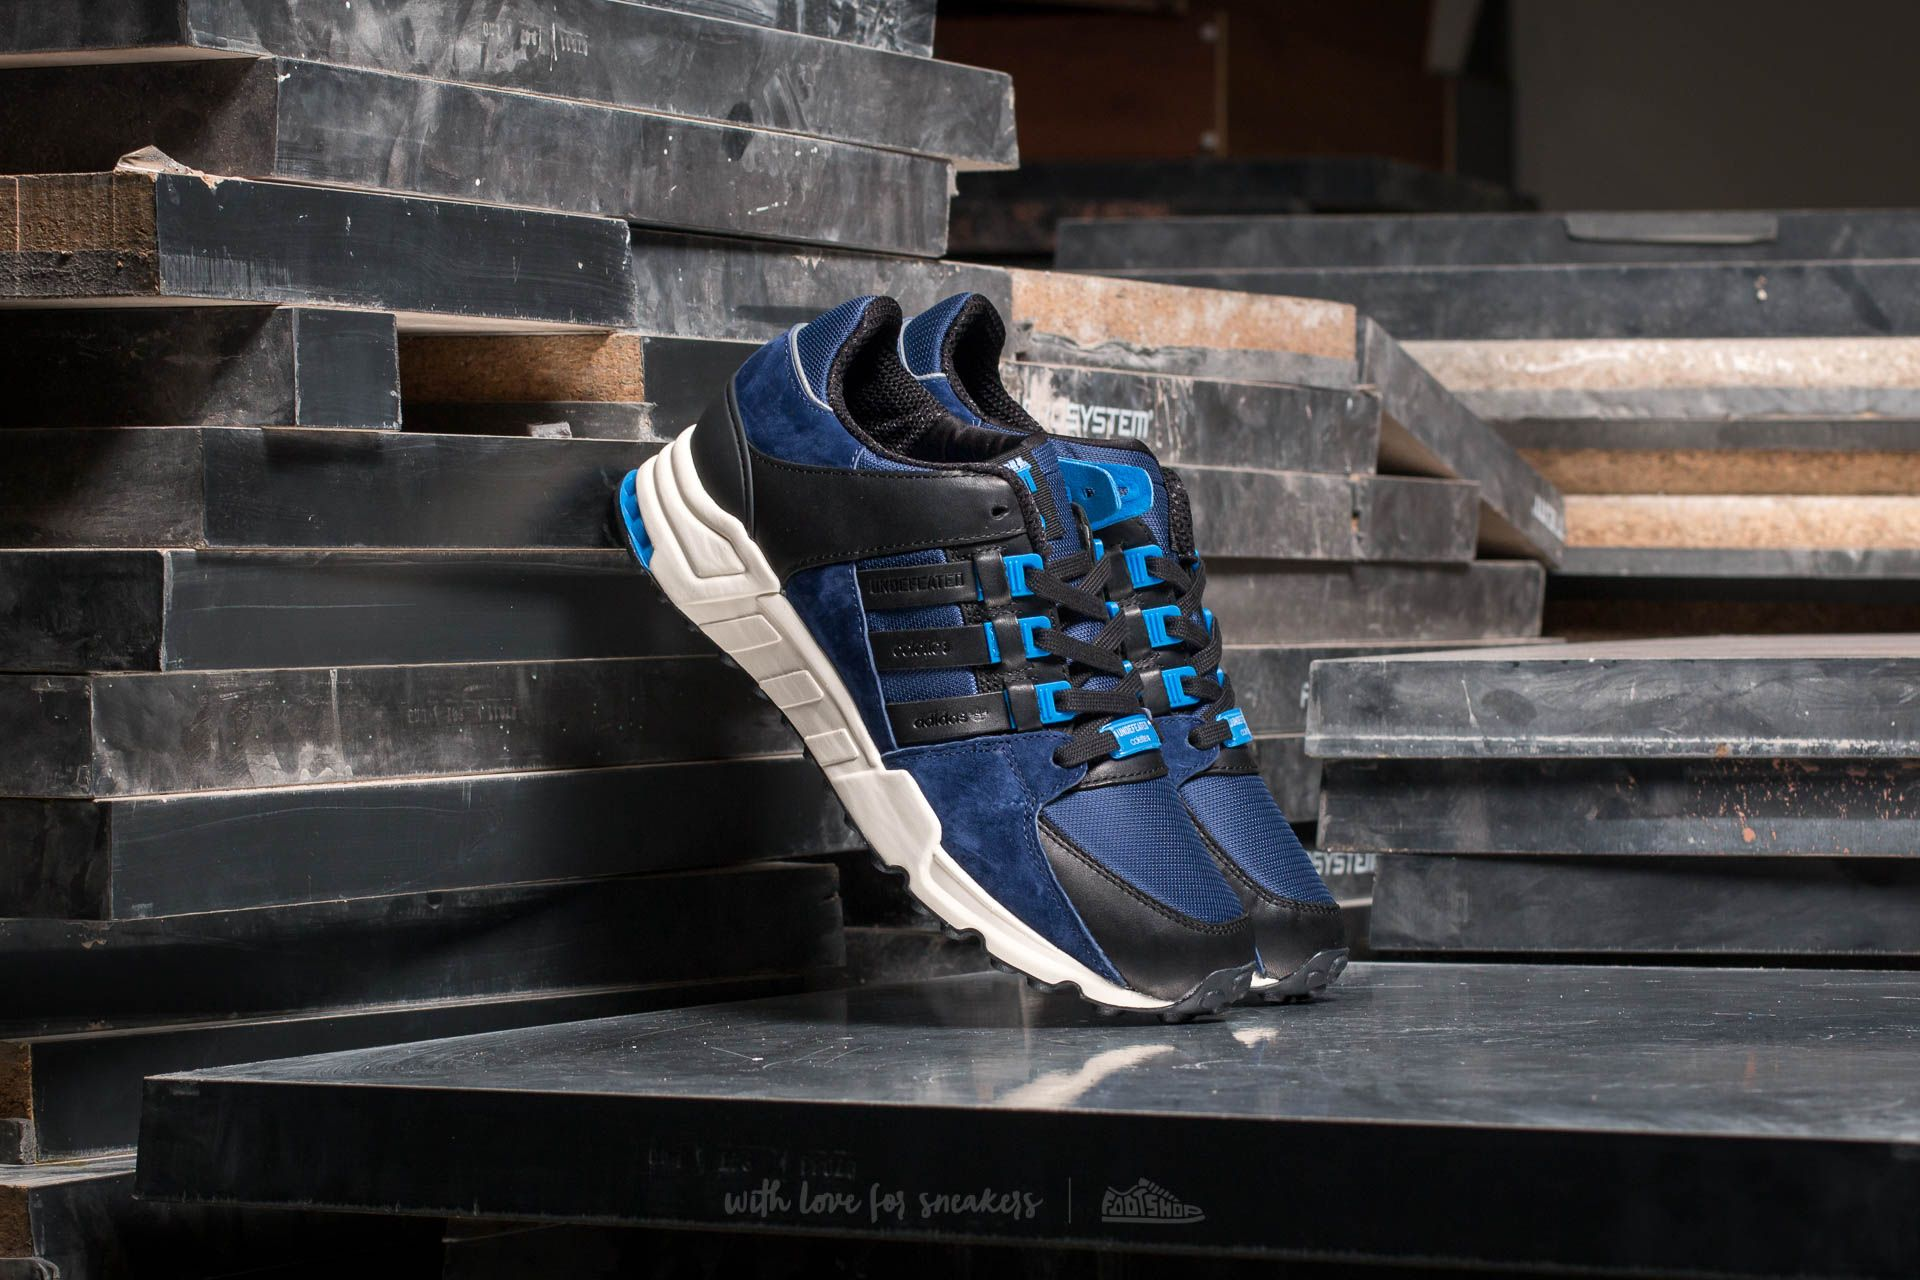 new product 7a3eb 96af5 adidas x Colette x Undefeated EQT Support S.E. Dark Blue/ Core ...